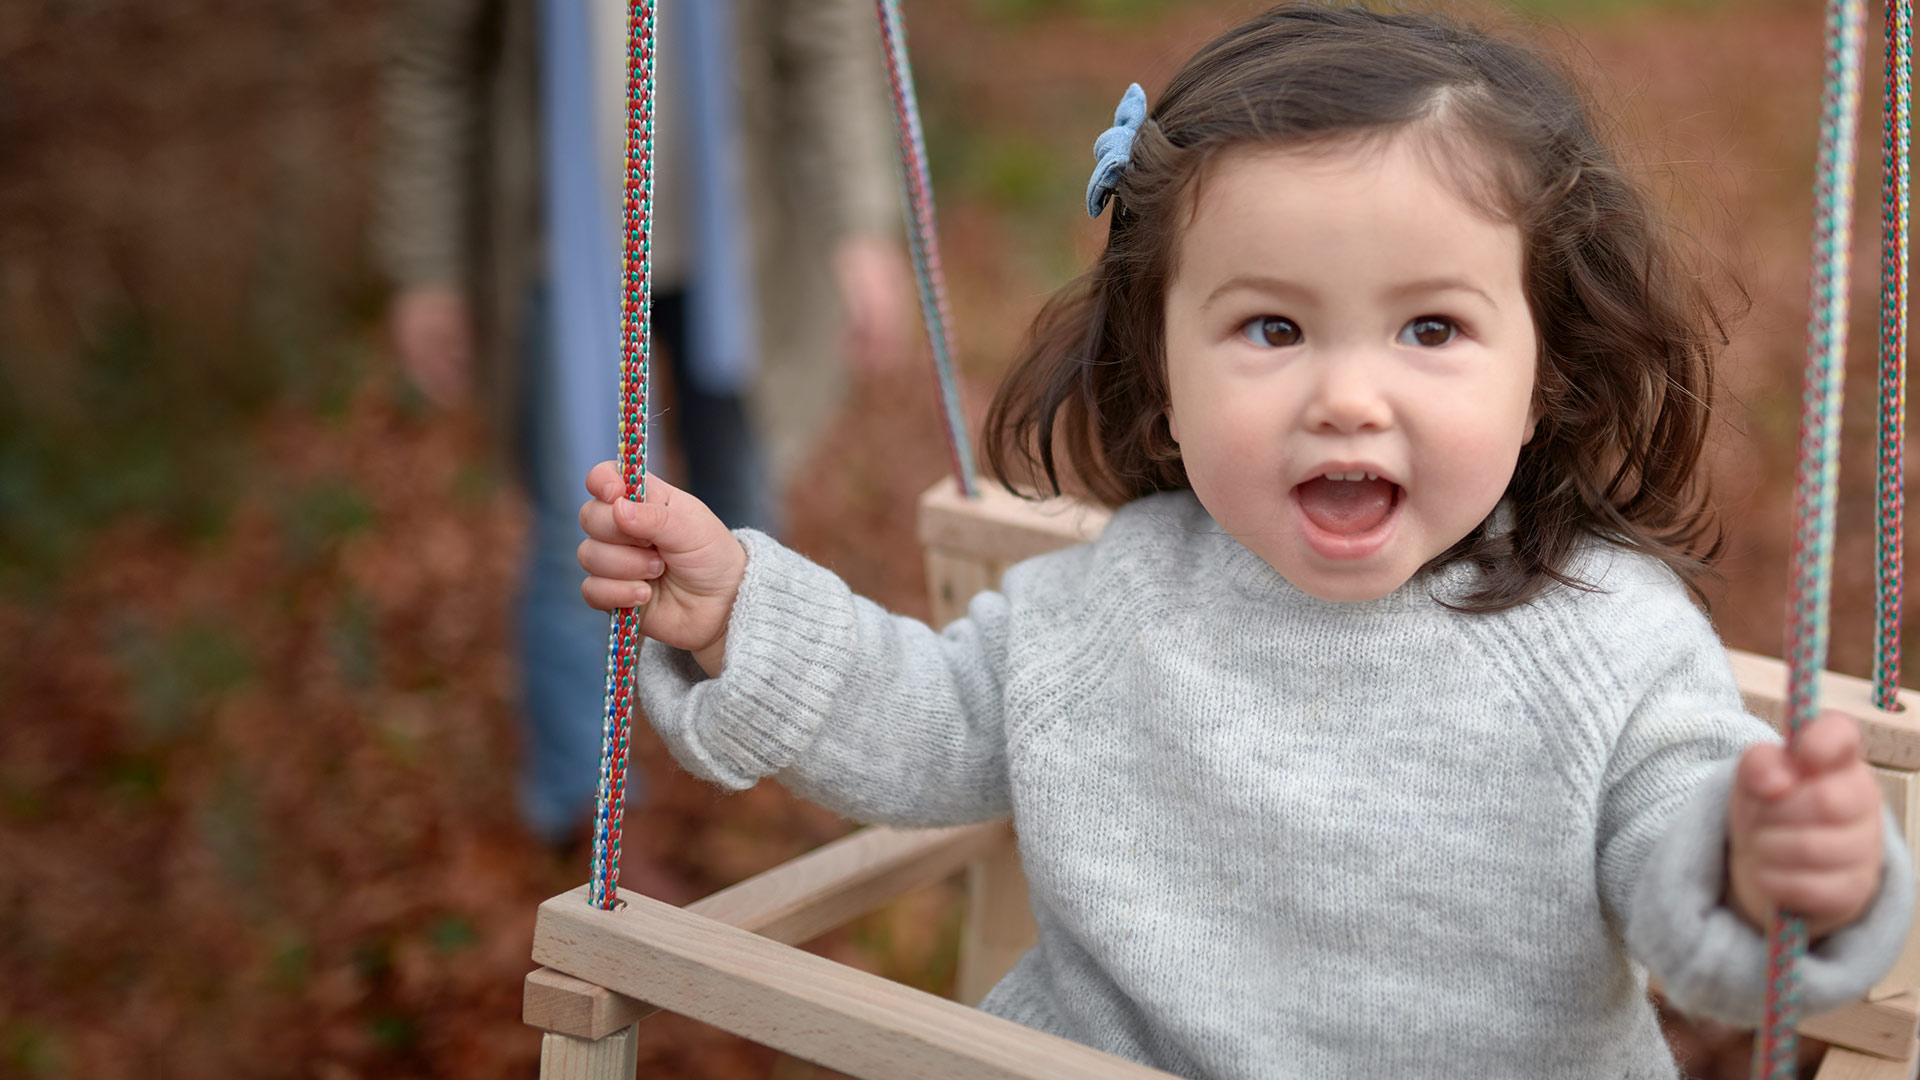 Toddler smiling on a swing